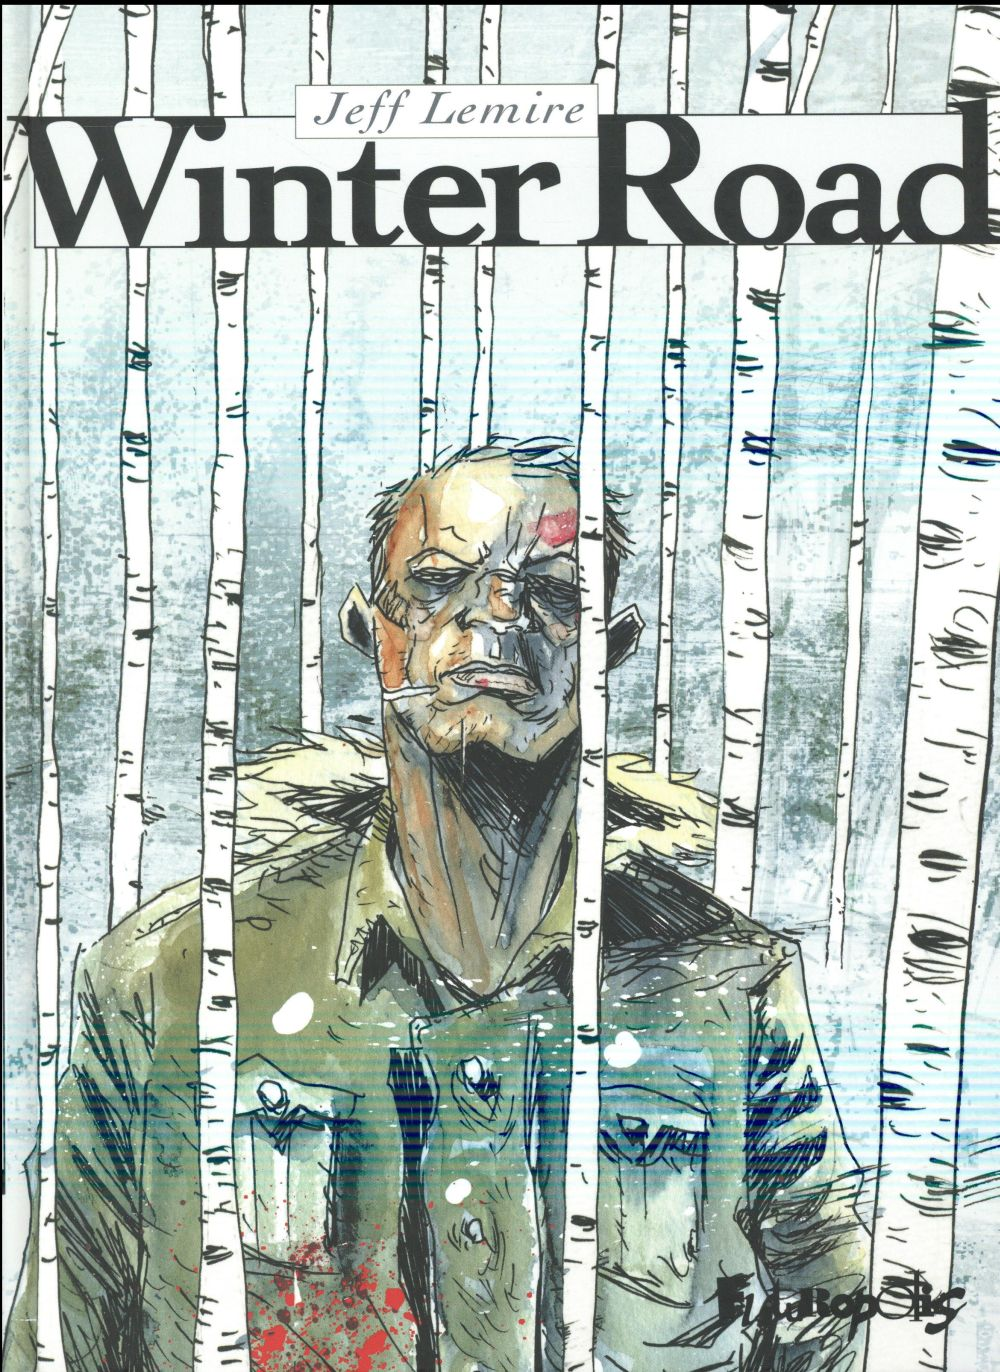 WINTER ROAD Lemire Jeff Futuropolis